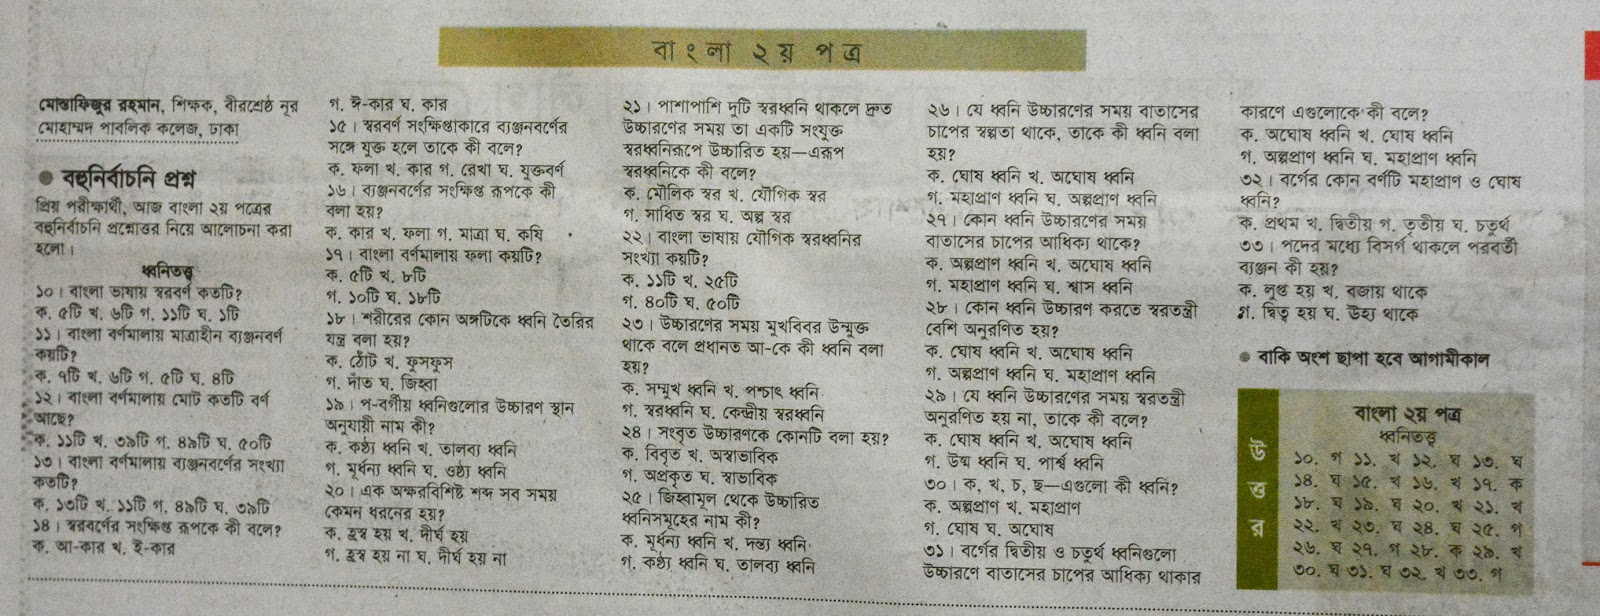 SSC Bangla 2nd Paper Suggestion 2020 with Question Paper